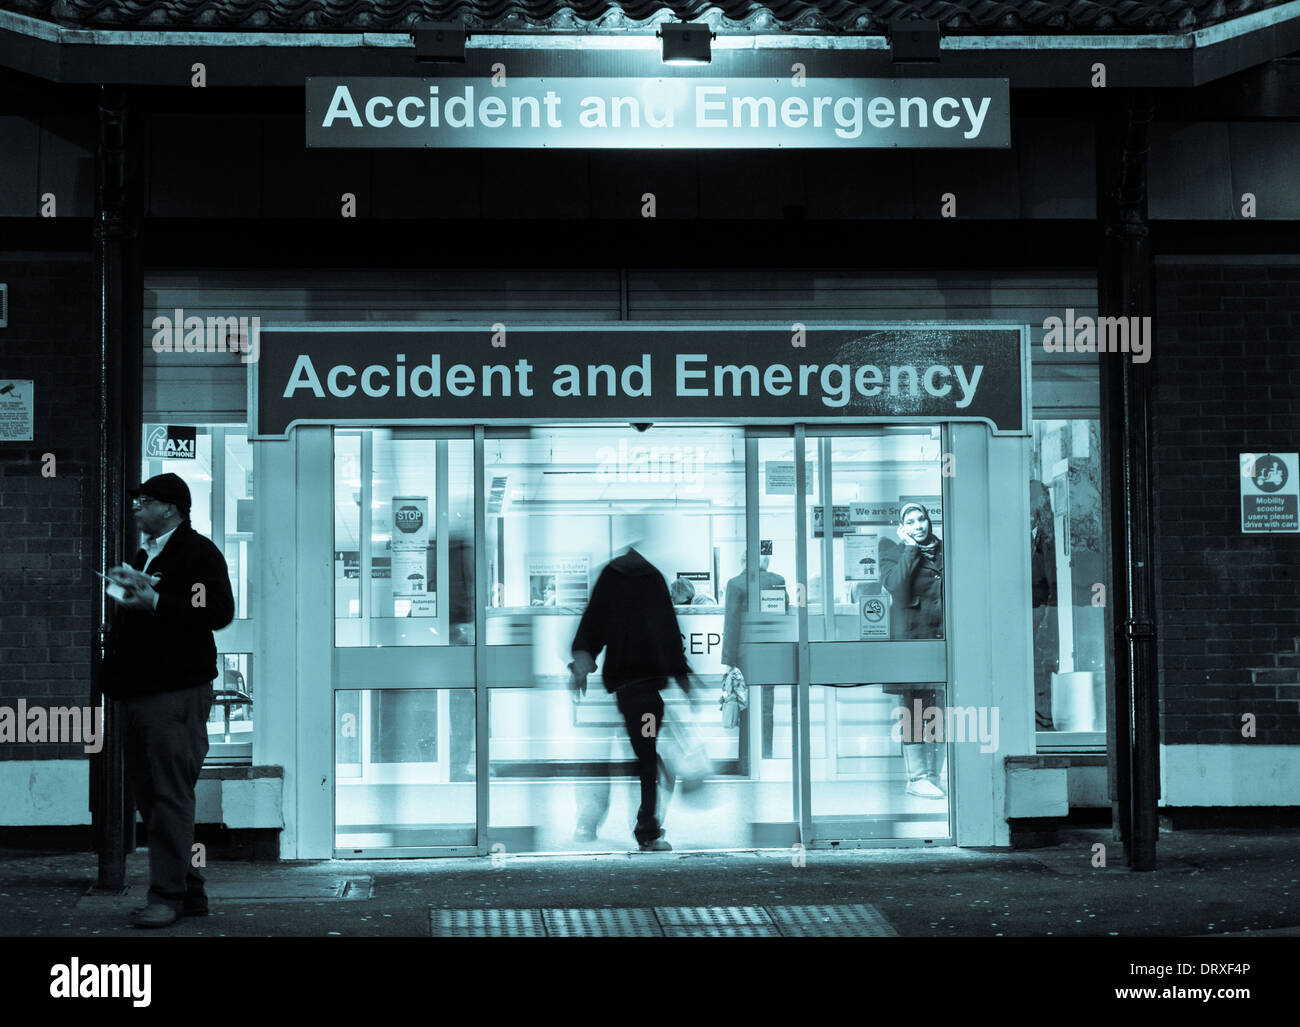 Accident and Emergency at University Hospital of North Tees, Hardwick Rd, Stockton on Tees, England, UK - Stock Image